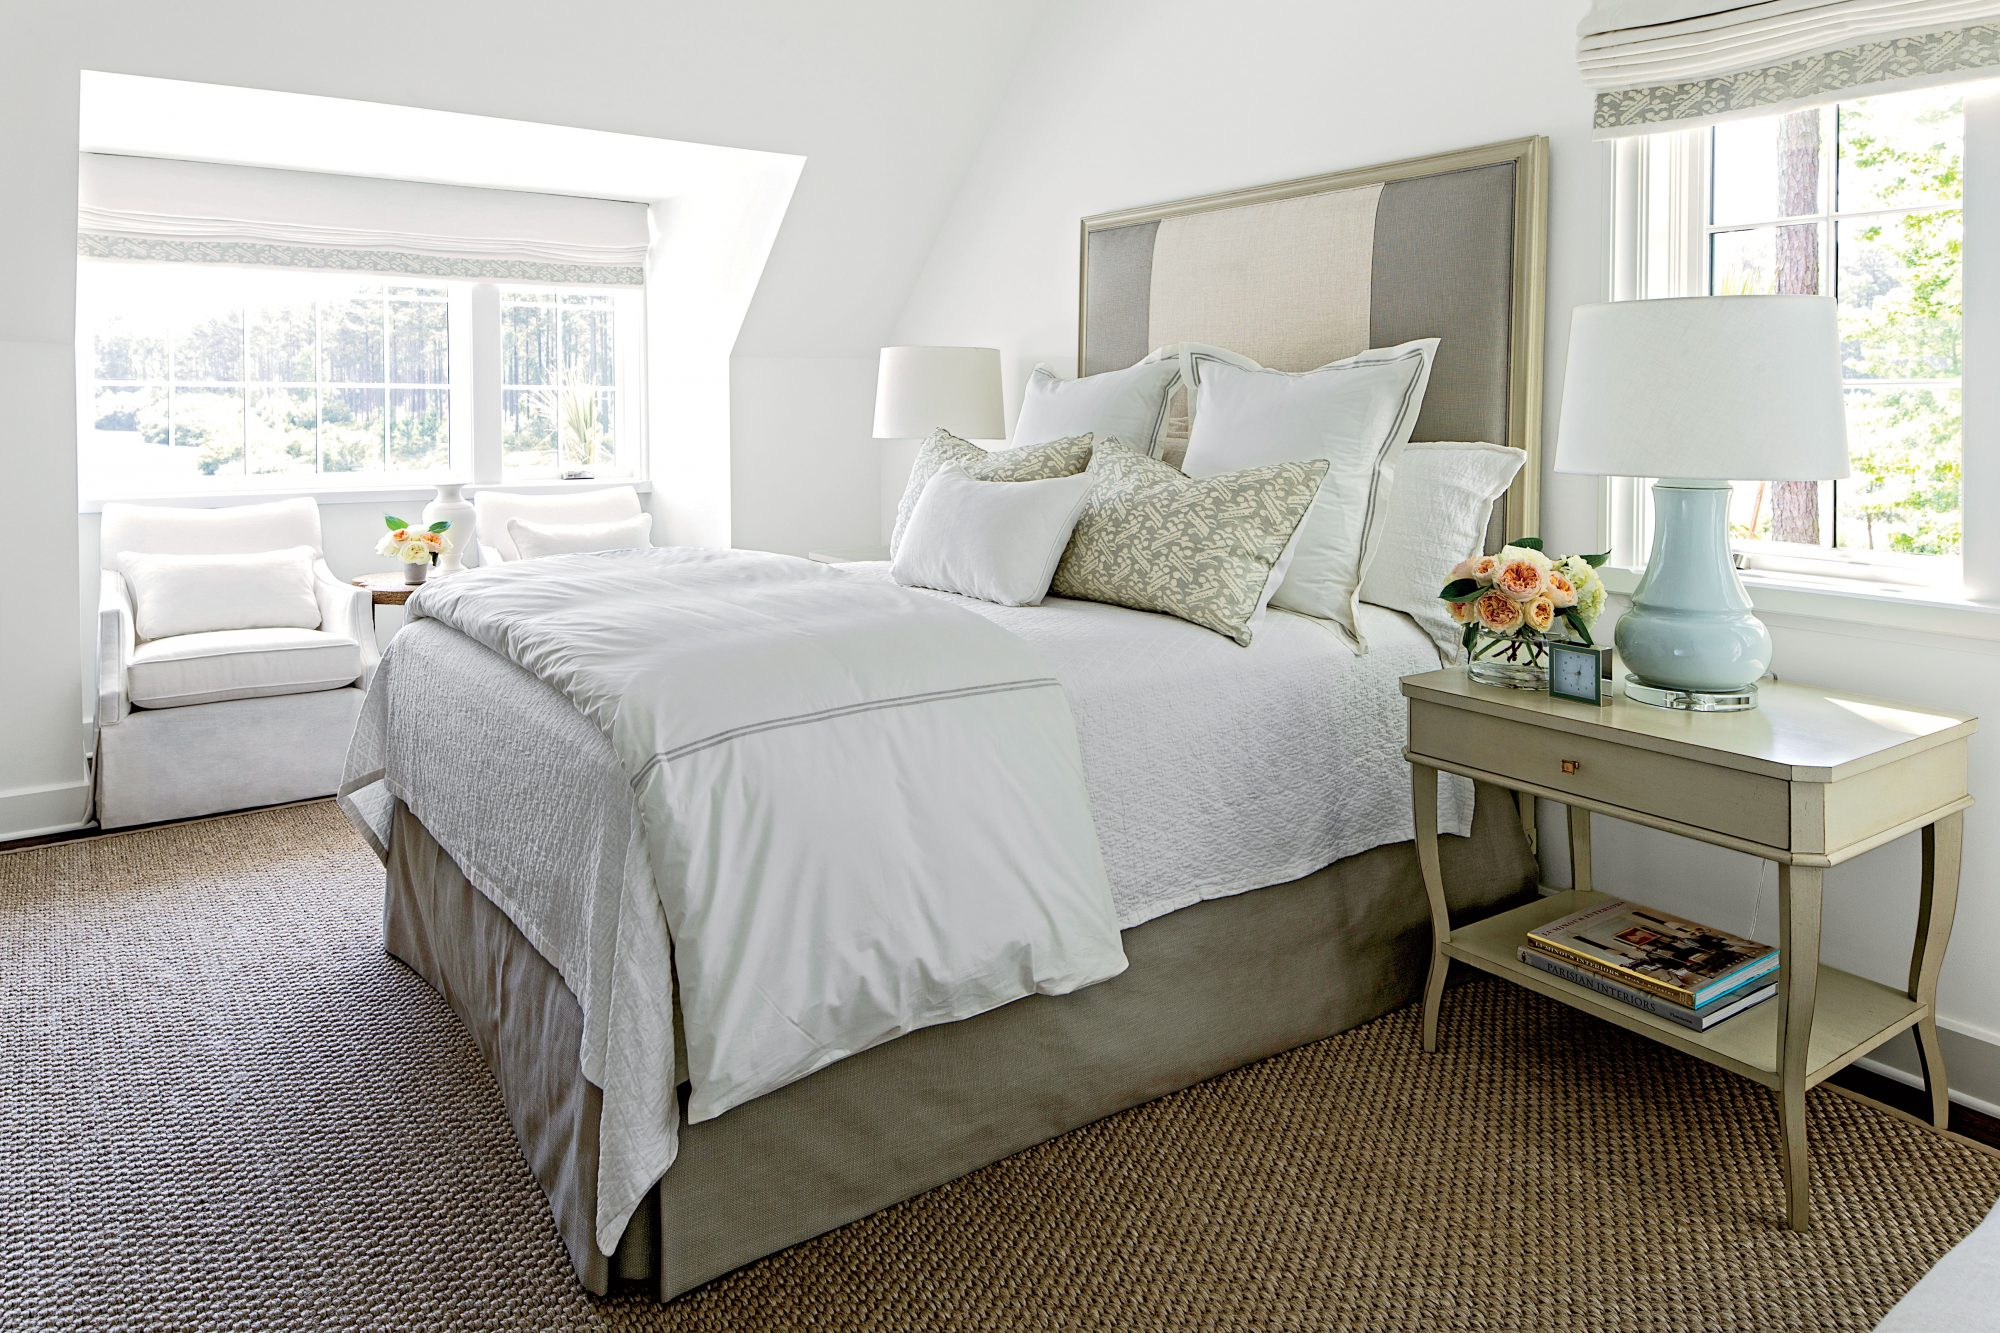 Guest Suite: The Bedroom